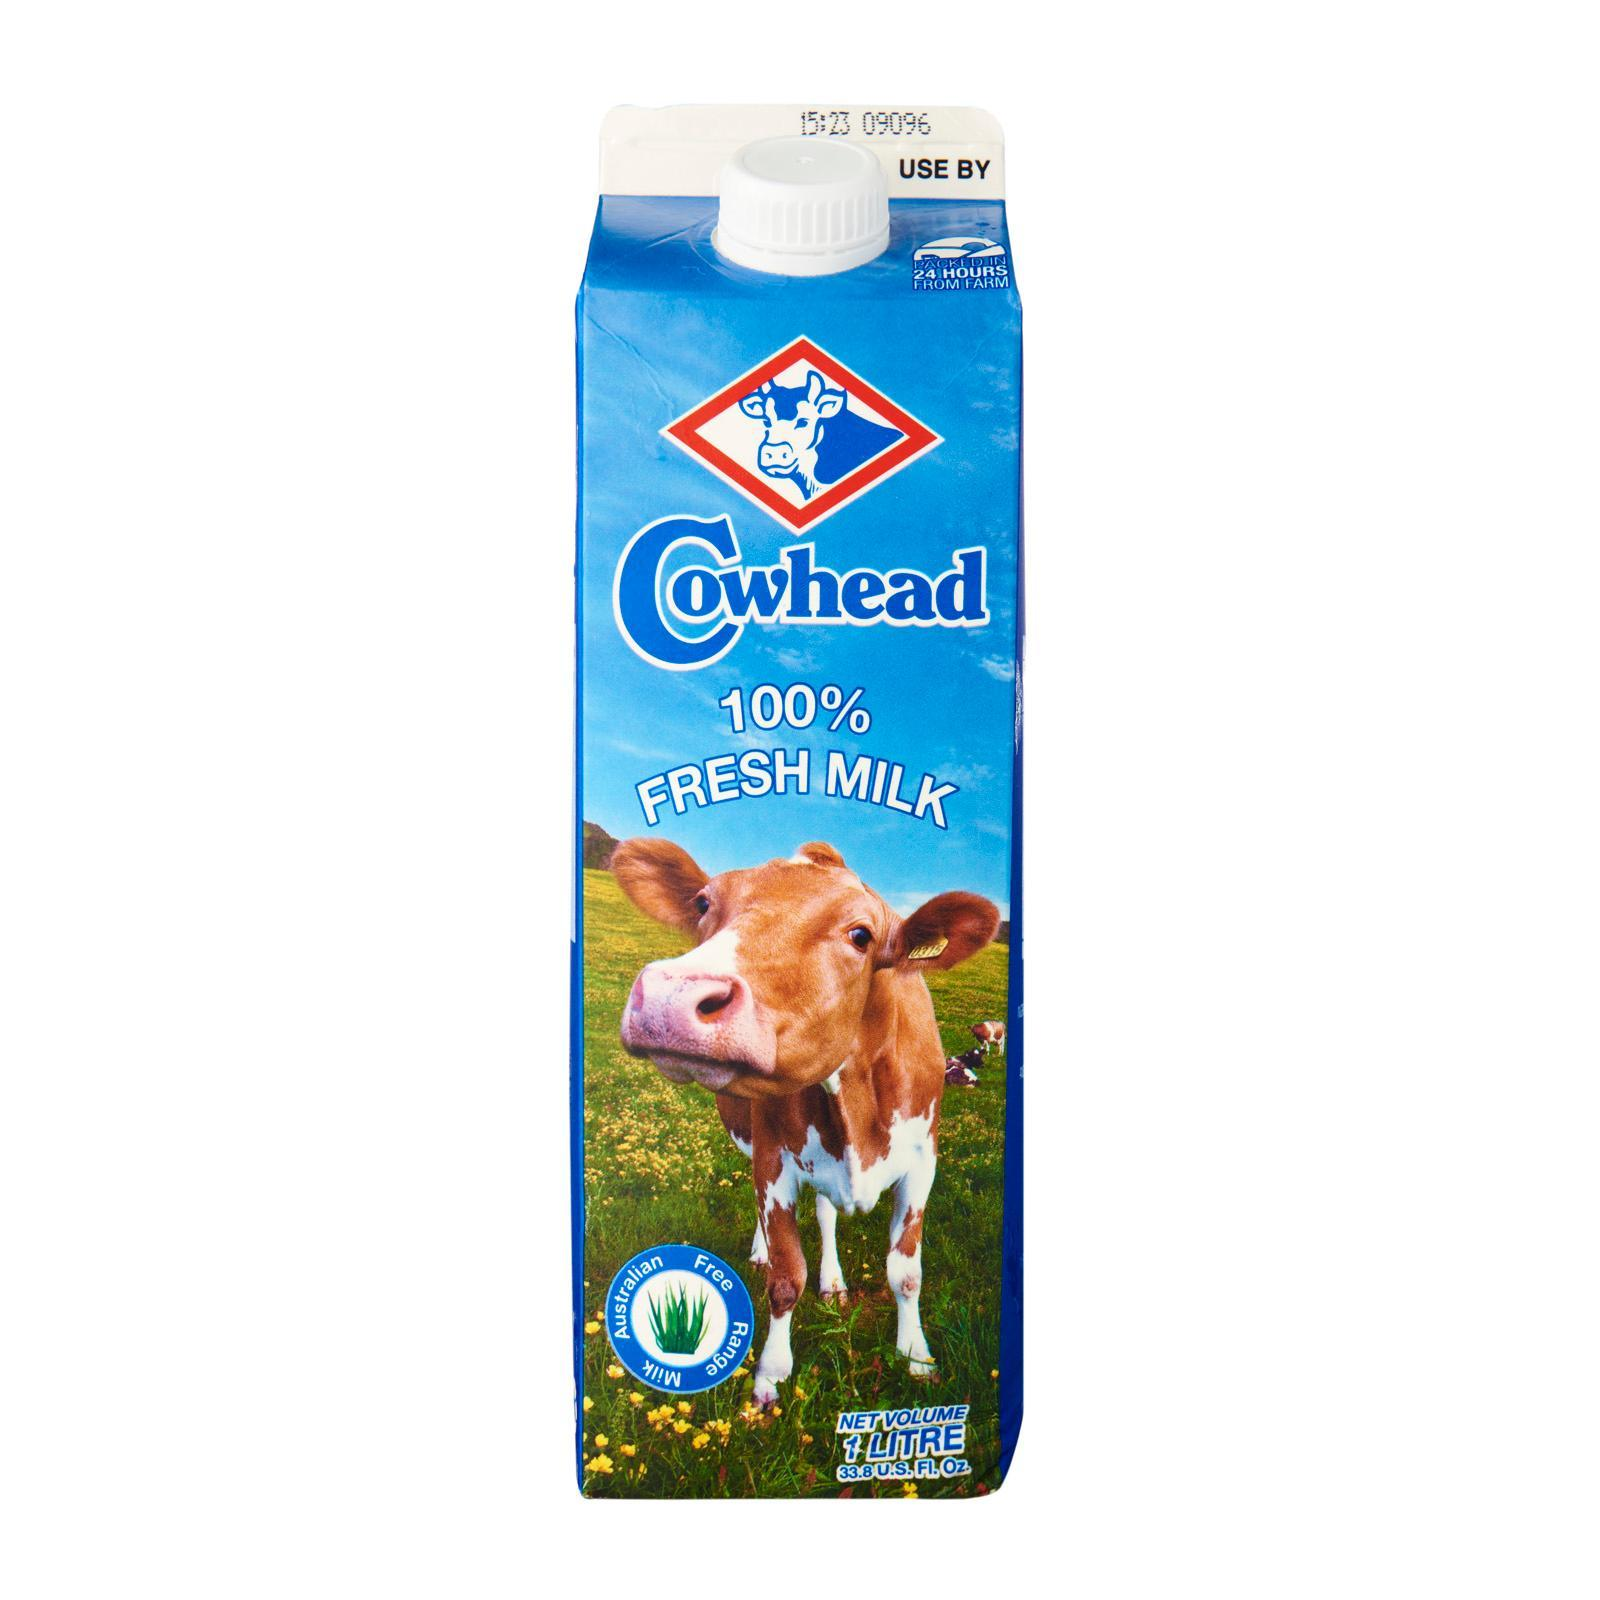 Cowhead Full Cream Fresh Milk